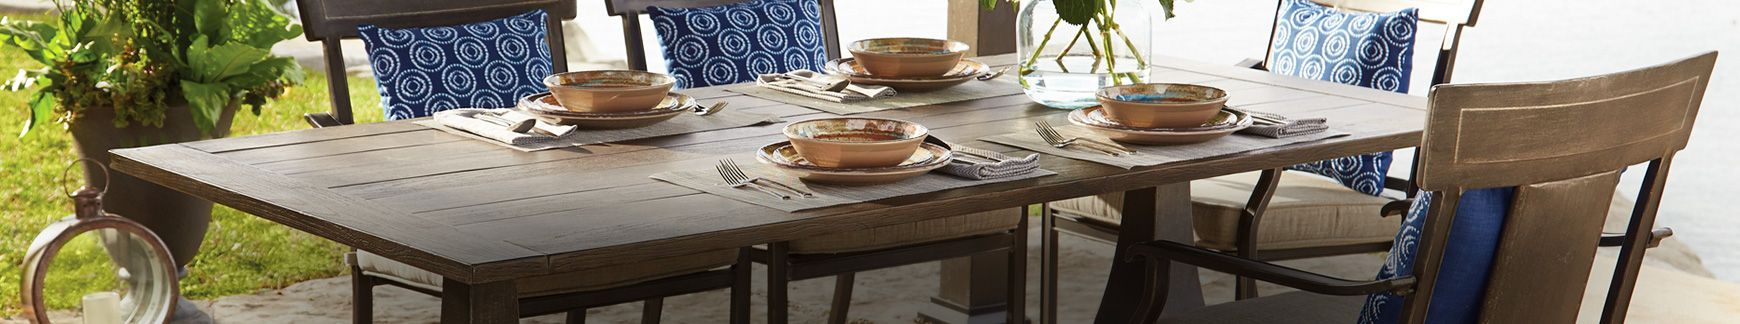 lowcountry lloyd dining flanders lf low furniture lloydflanders piece vinyl woven set patio country